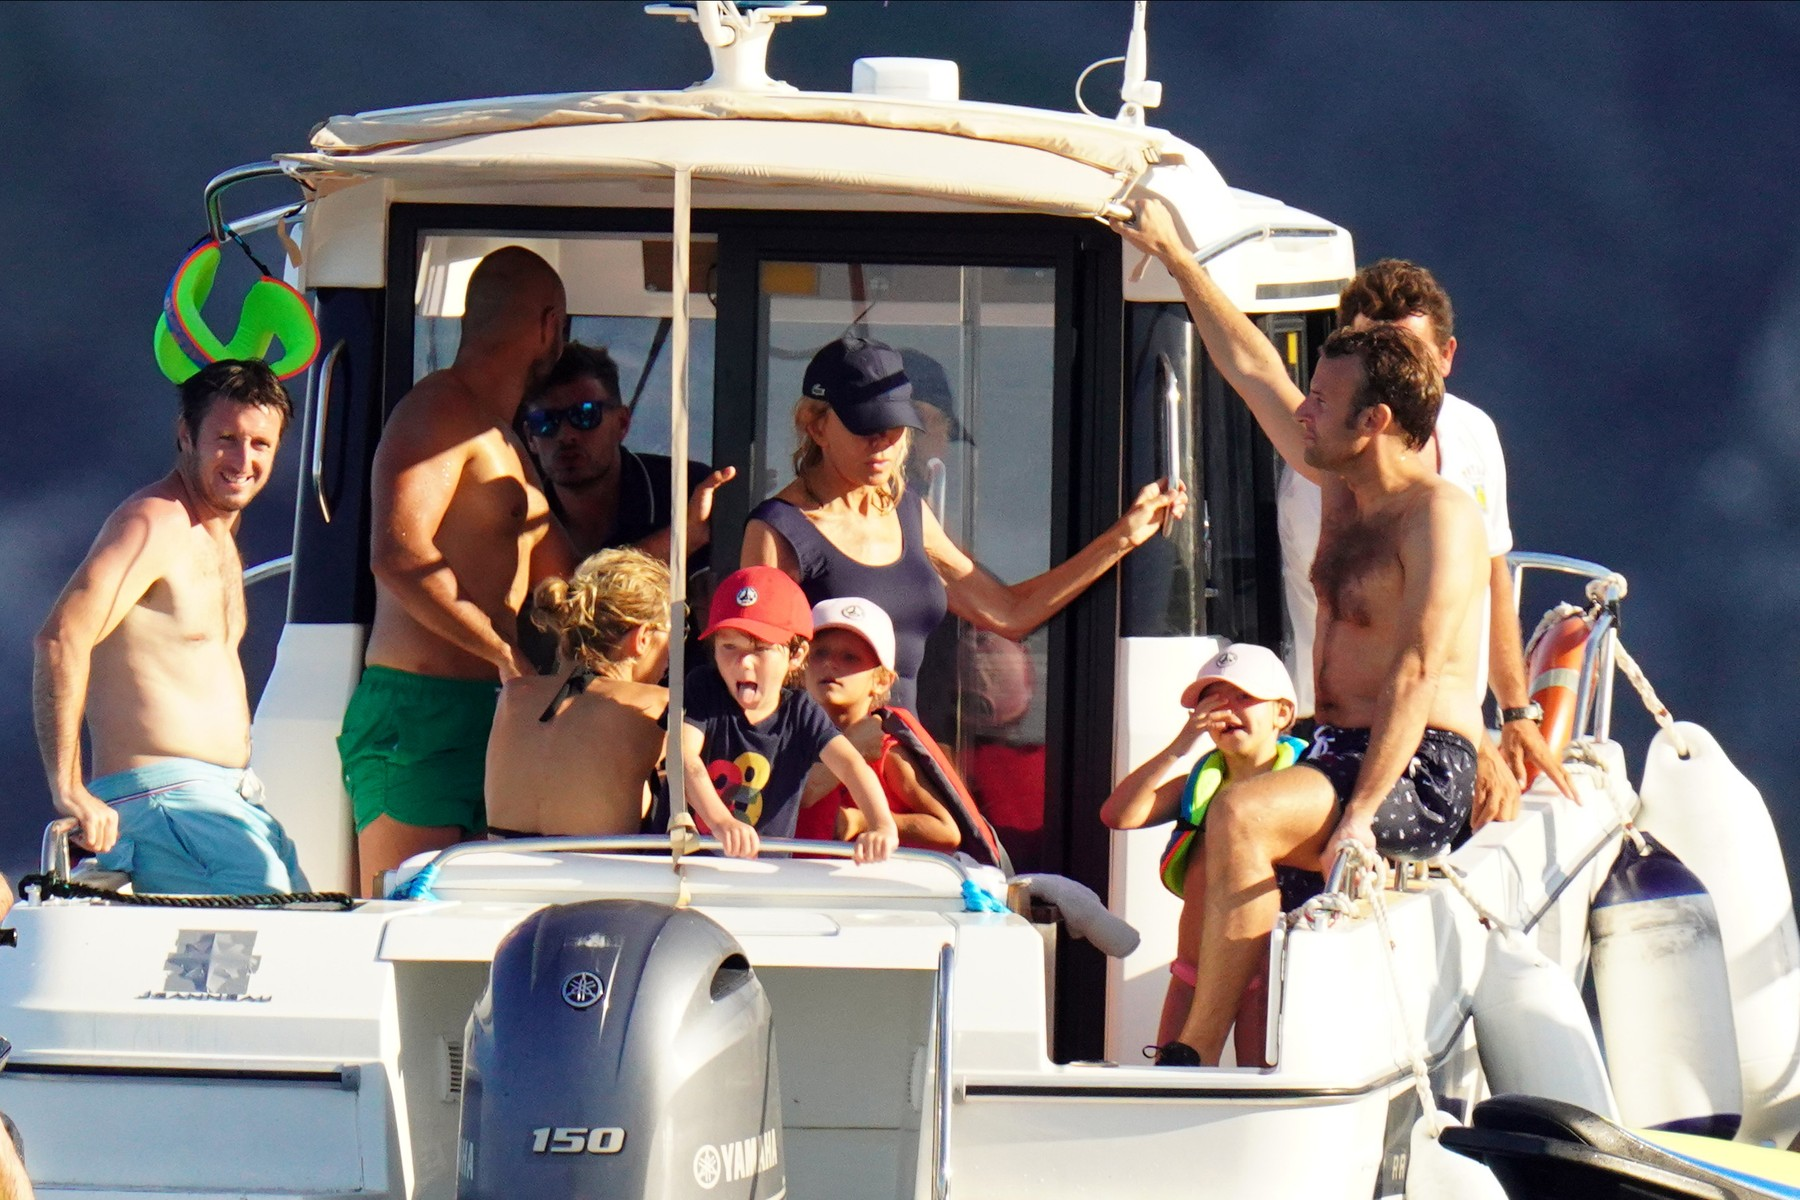 PREMIUM EXCLUSIVE - STRICTLY NO WEB NO BLOG BEFORE THURSDAY 13TH AUGUST 2020 -  French president Emmanuel Macron and wife Brigitte seen enjoying their holiday with their family during a boat day at Porquerolles island in South of France. 01 Aug 2020  The First Lady looks more sculptural than ever.,Image: 551857084, License: Rights-managed, Restrictions: ONLY Australia, Canada, Croatia, Denmark, Greece, Ireland, Israel, Japan, Lithuania, New Zealand, Norway, Poland, Portugal, Romania, Slovakia, Slovenia, South Africa, South Korea, Taiwan, Thailand, Turkey, Ukraine, United Arab Emirates, United Kingdom, United States, Model Release: no, Credit line: MEGA / The Mega Agency / Profimedia